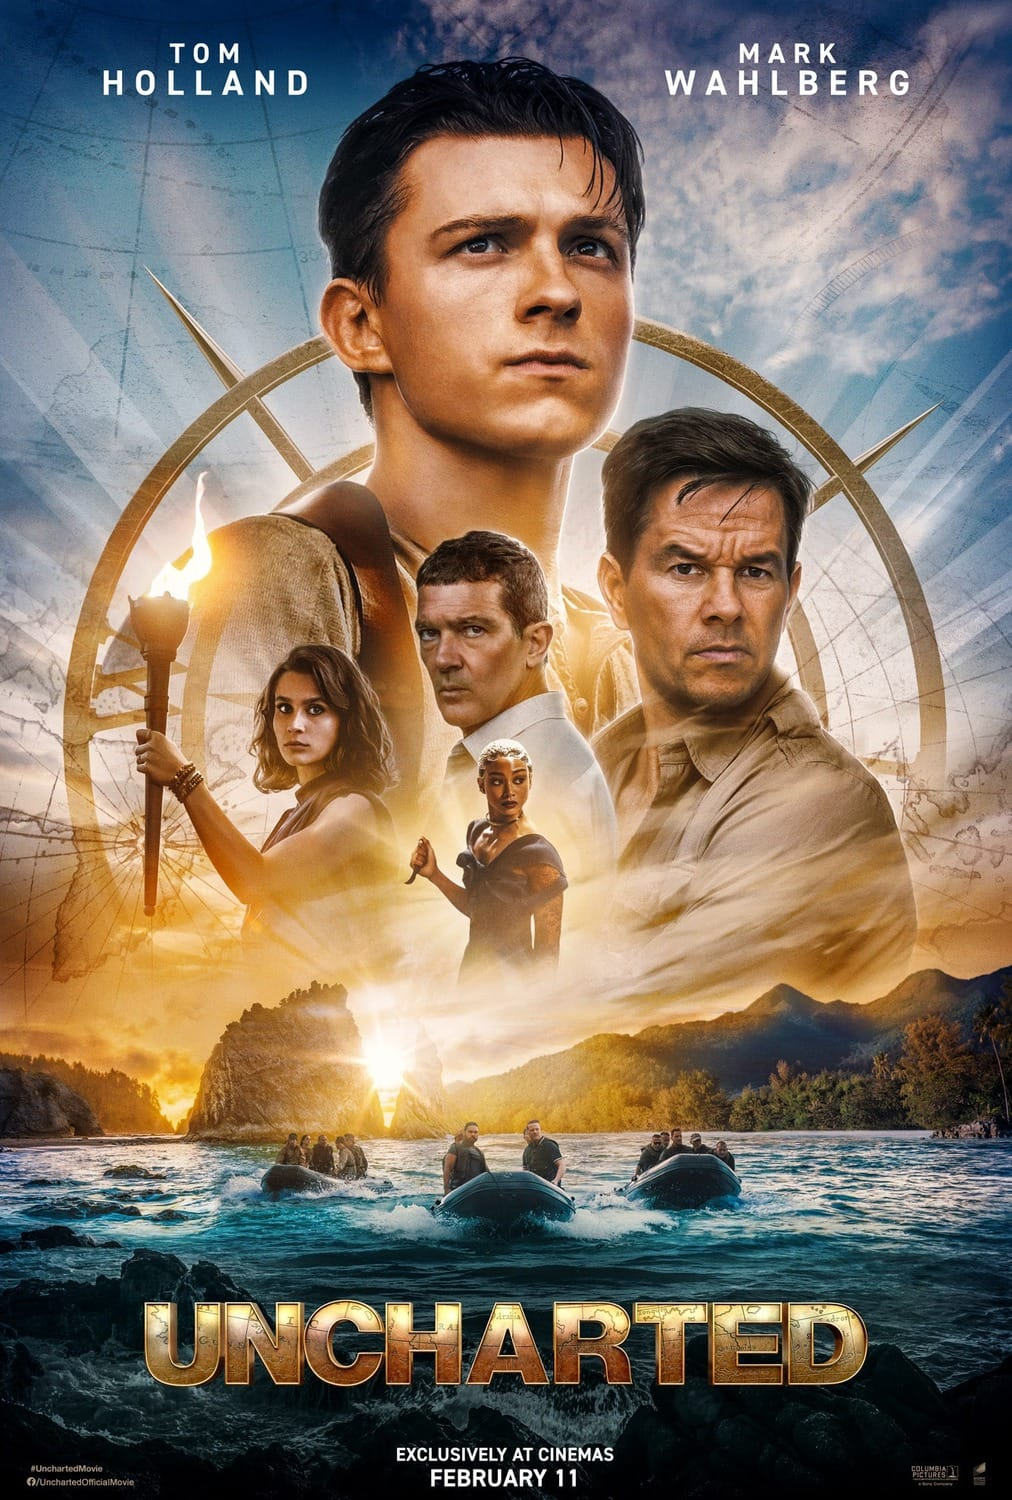 Uncharted (The Movie) starring Tom Holland and Mark Wahlberg gets its first trailer